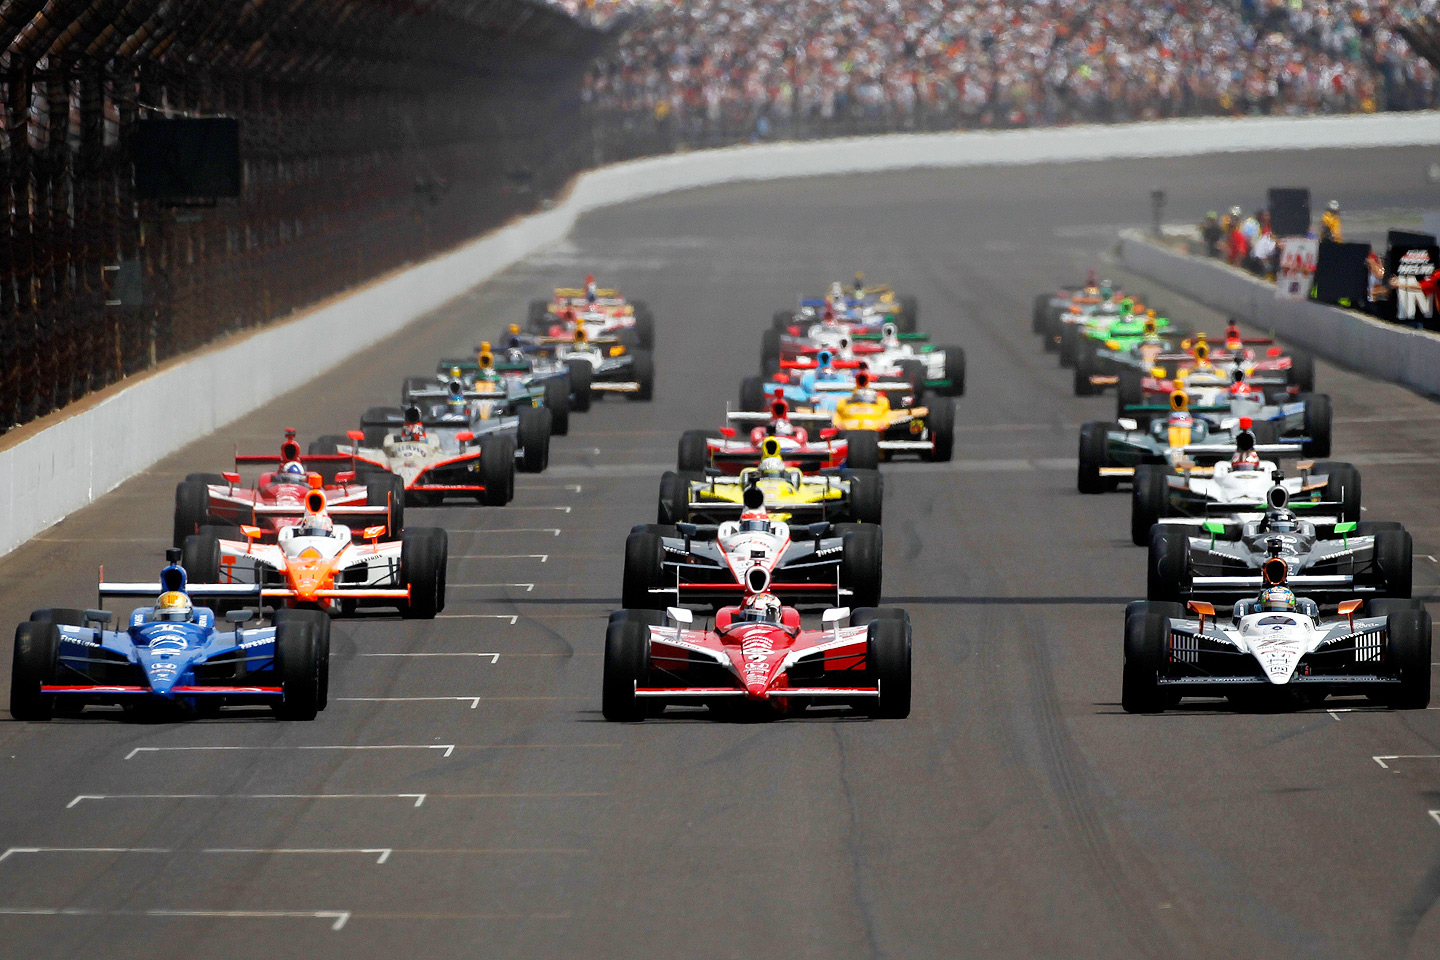 Cars Used In Indy Grand Prix